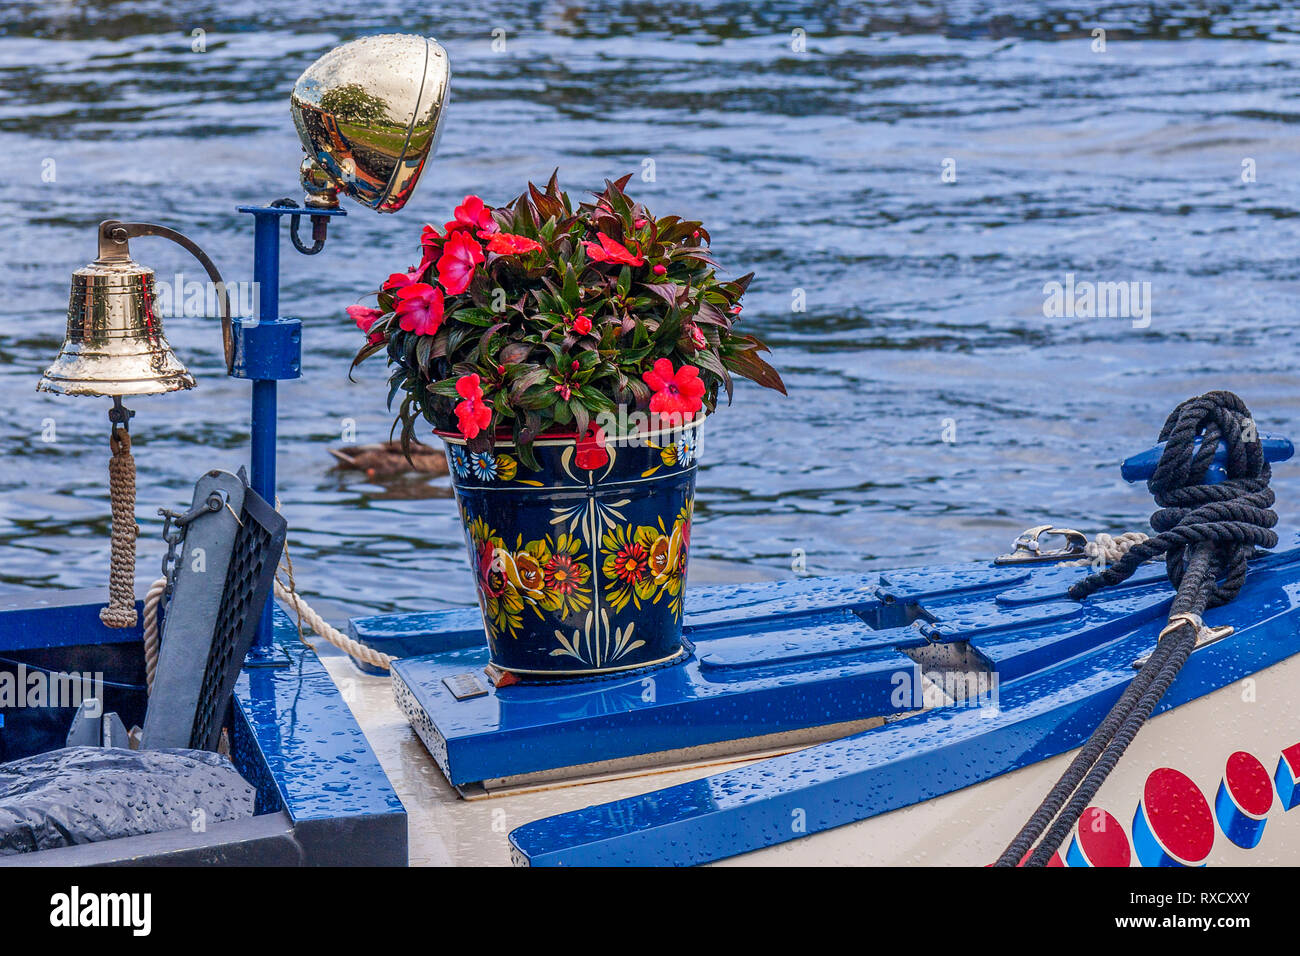 Bargeware On A Boat,  Henley On Thames, Oxfordshire, UK Stock Photo